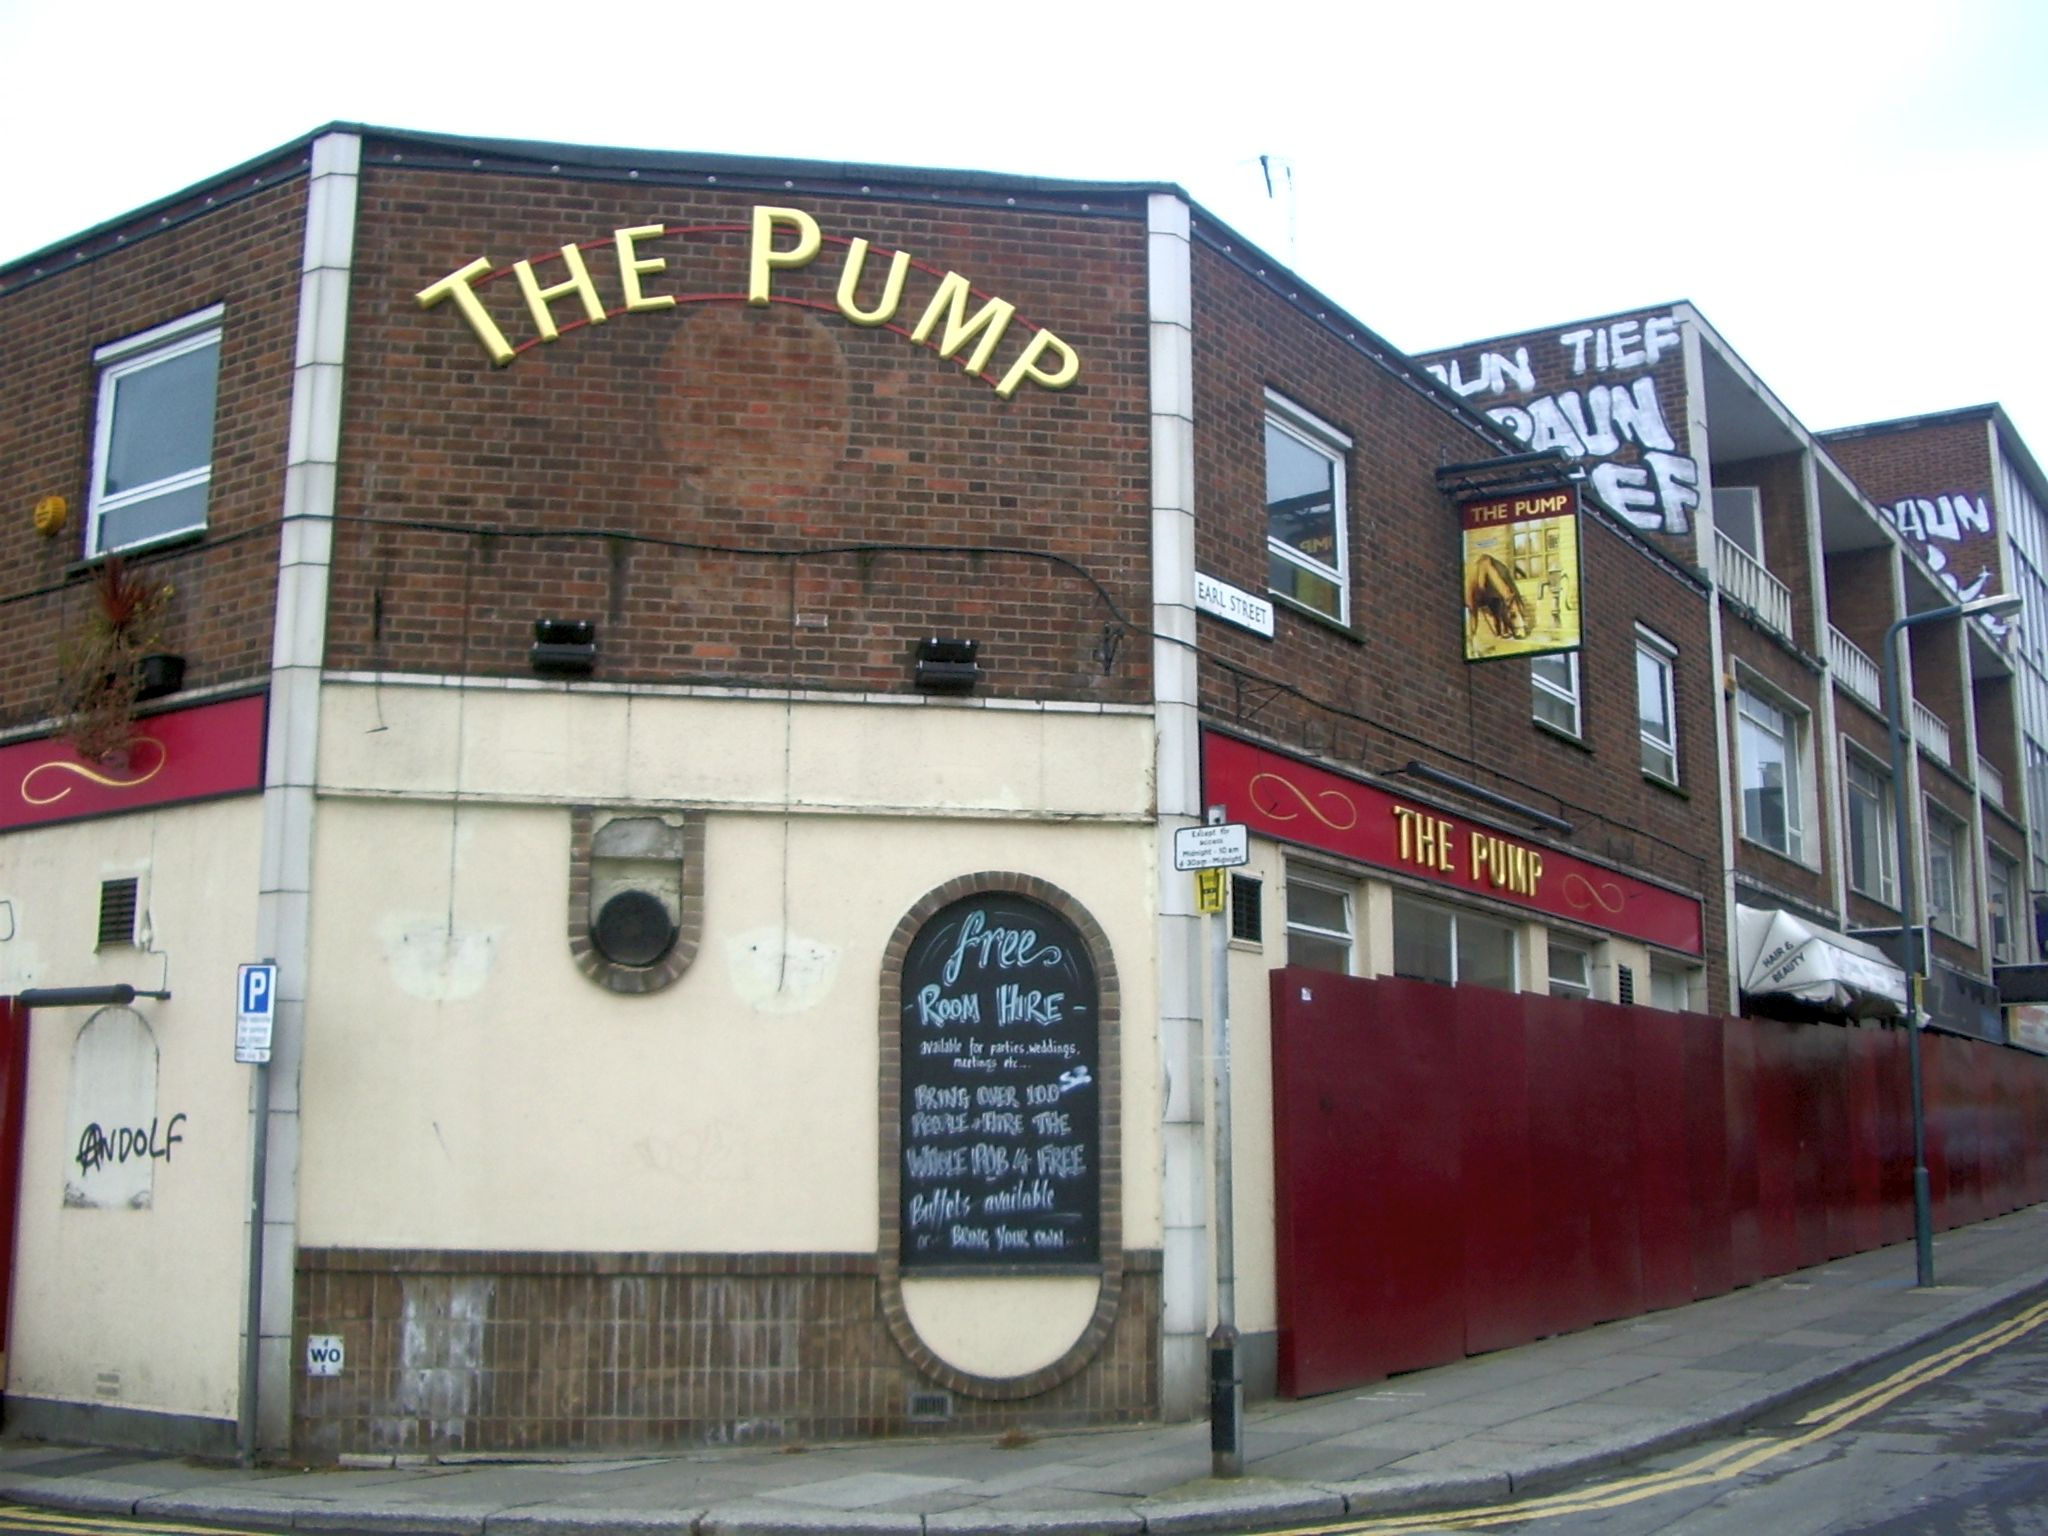 The Pump pub on the Moor, Sheffield